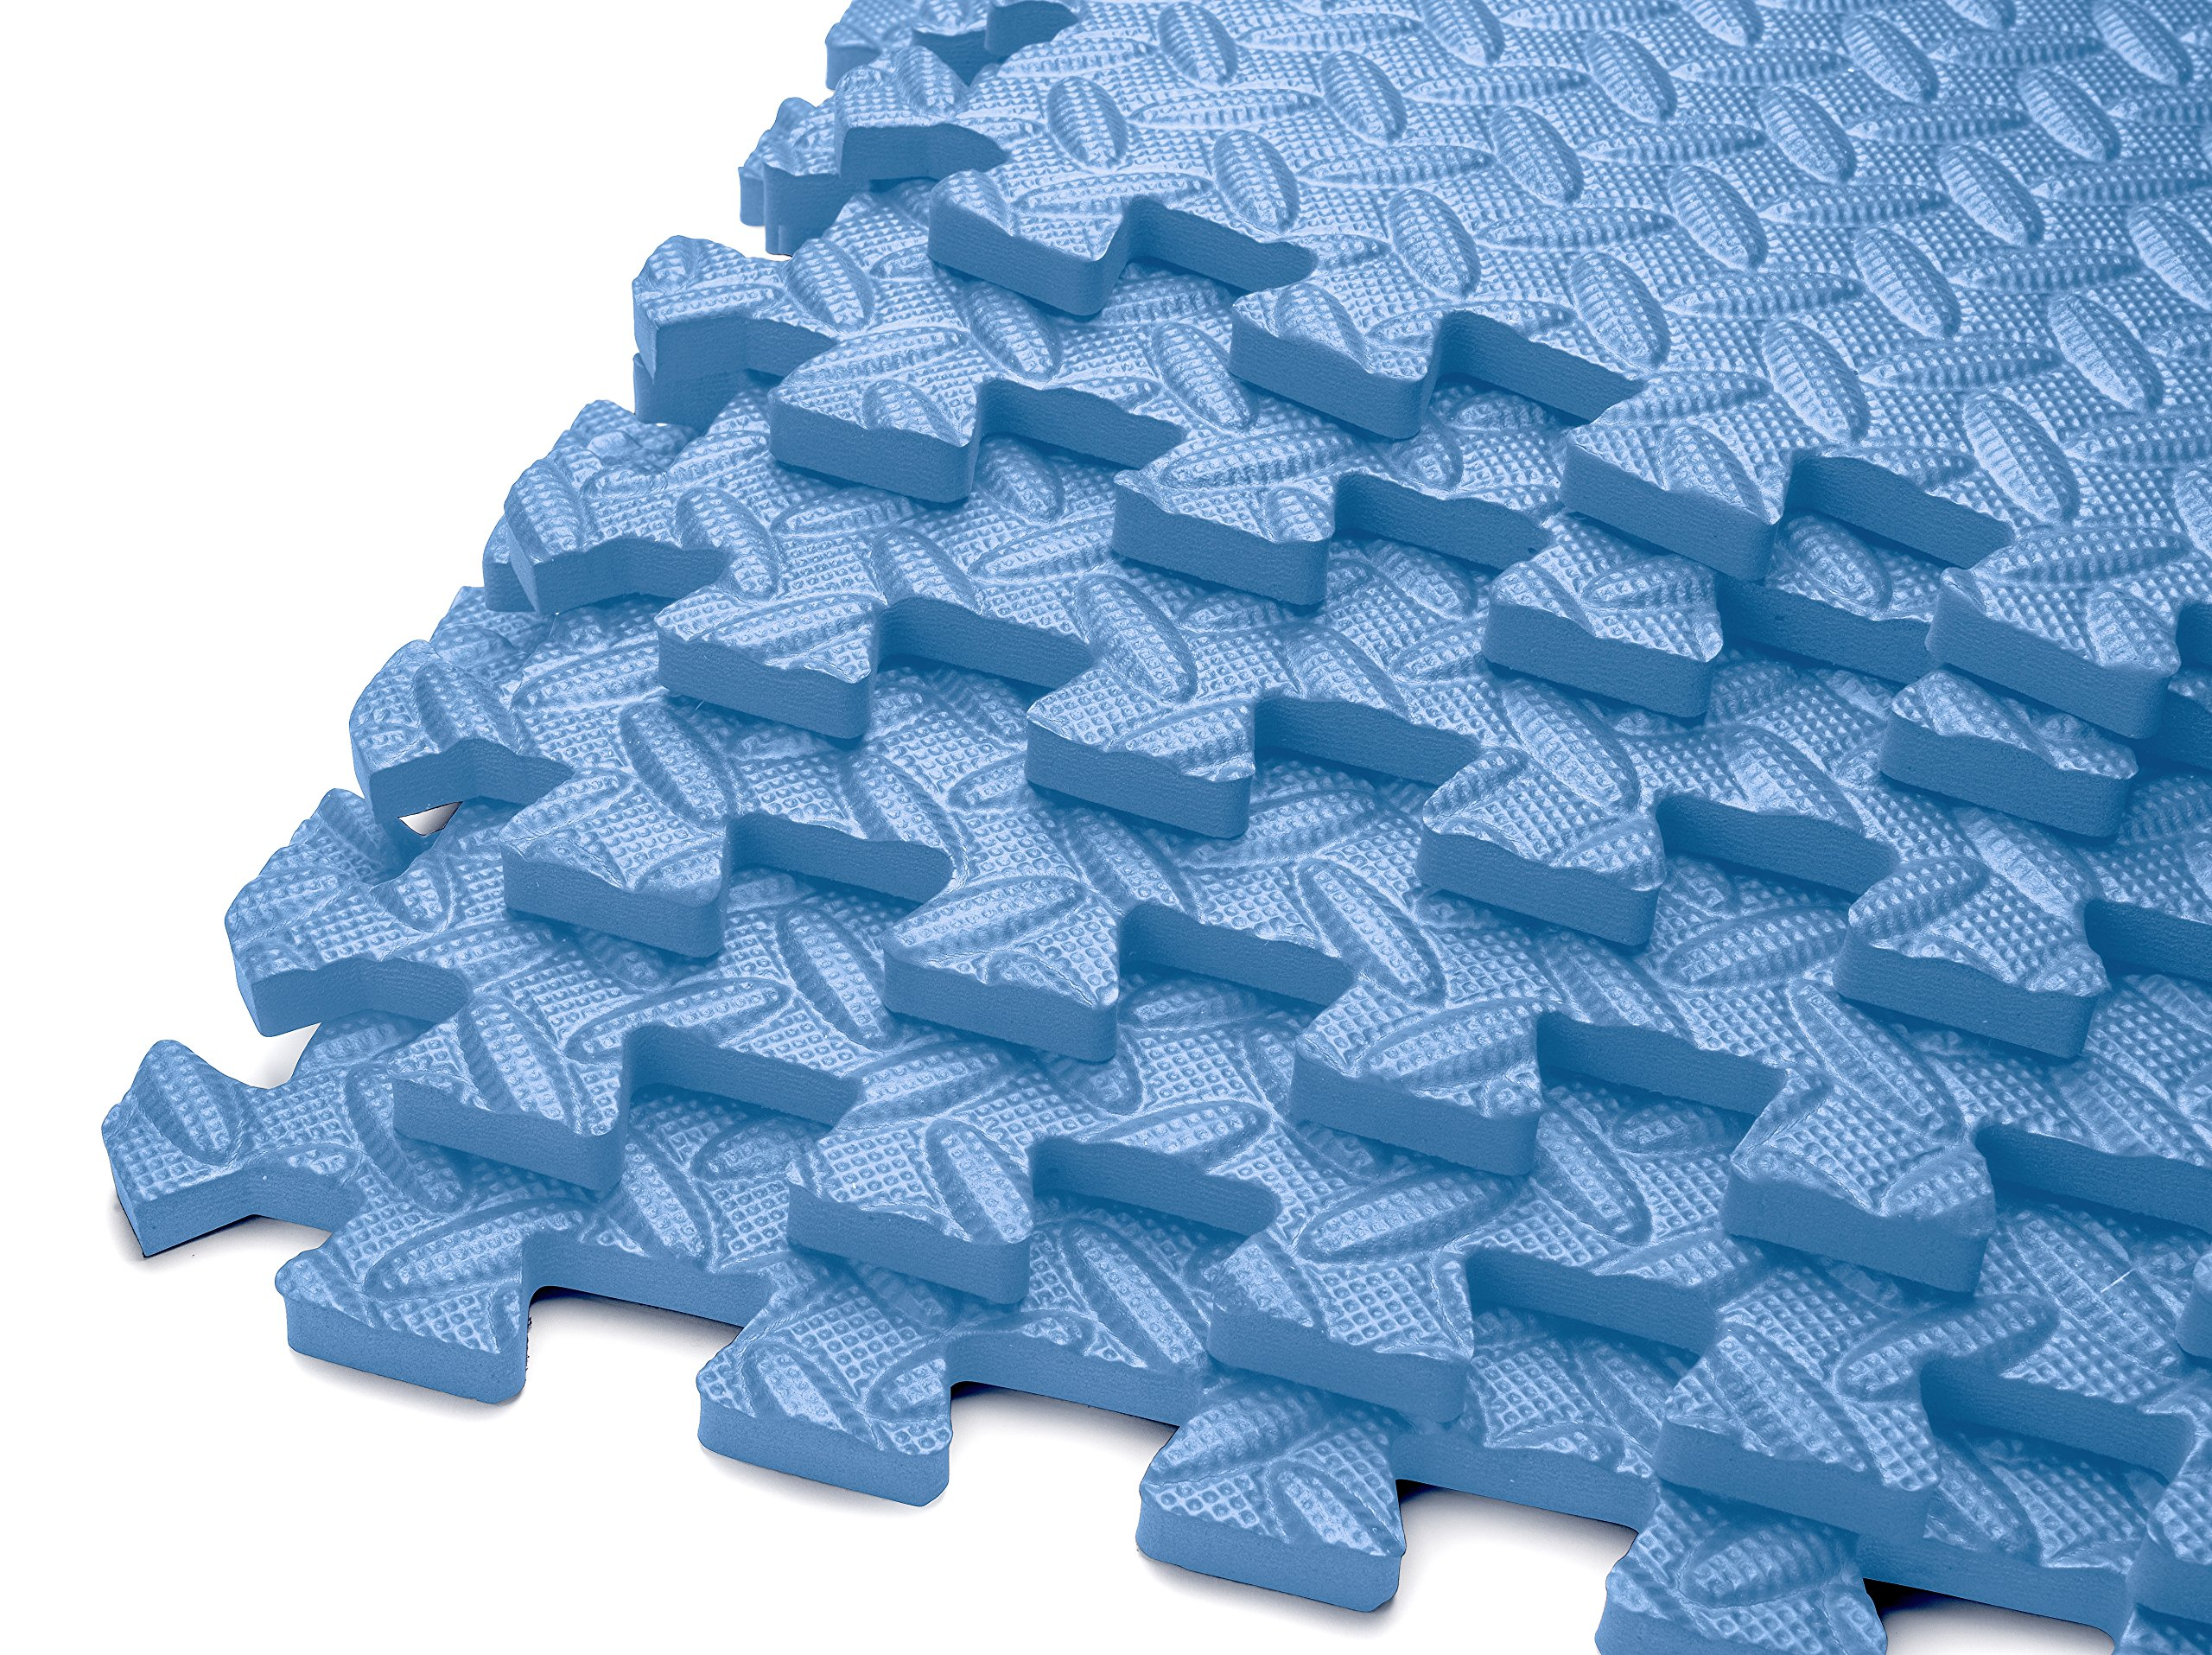 HemingWeigh Puzzle Exercise Mat EVA Foam Interlocking Tiles - Covers 144 Square Feet -Light Blue (Each Pack Contains 6 Tiles for a Total of 36 Tiles)